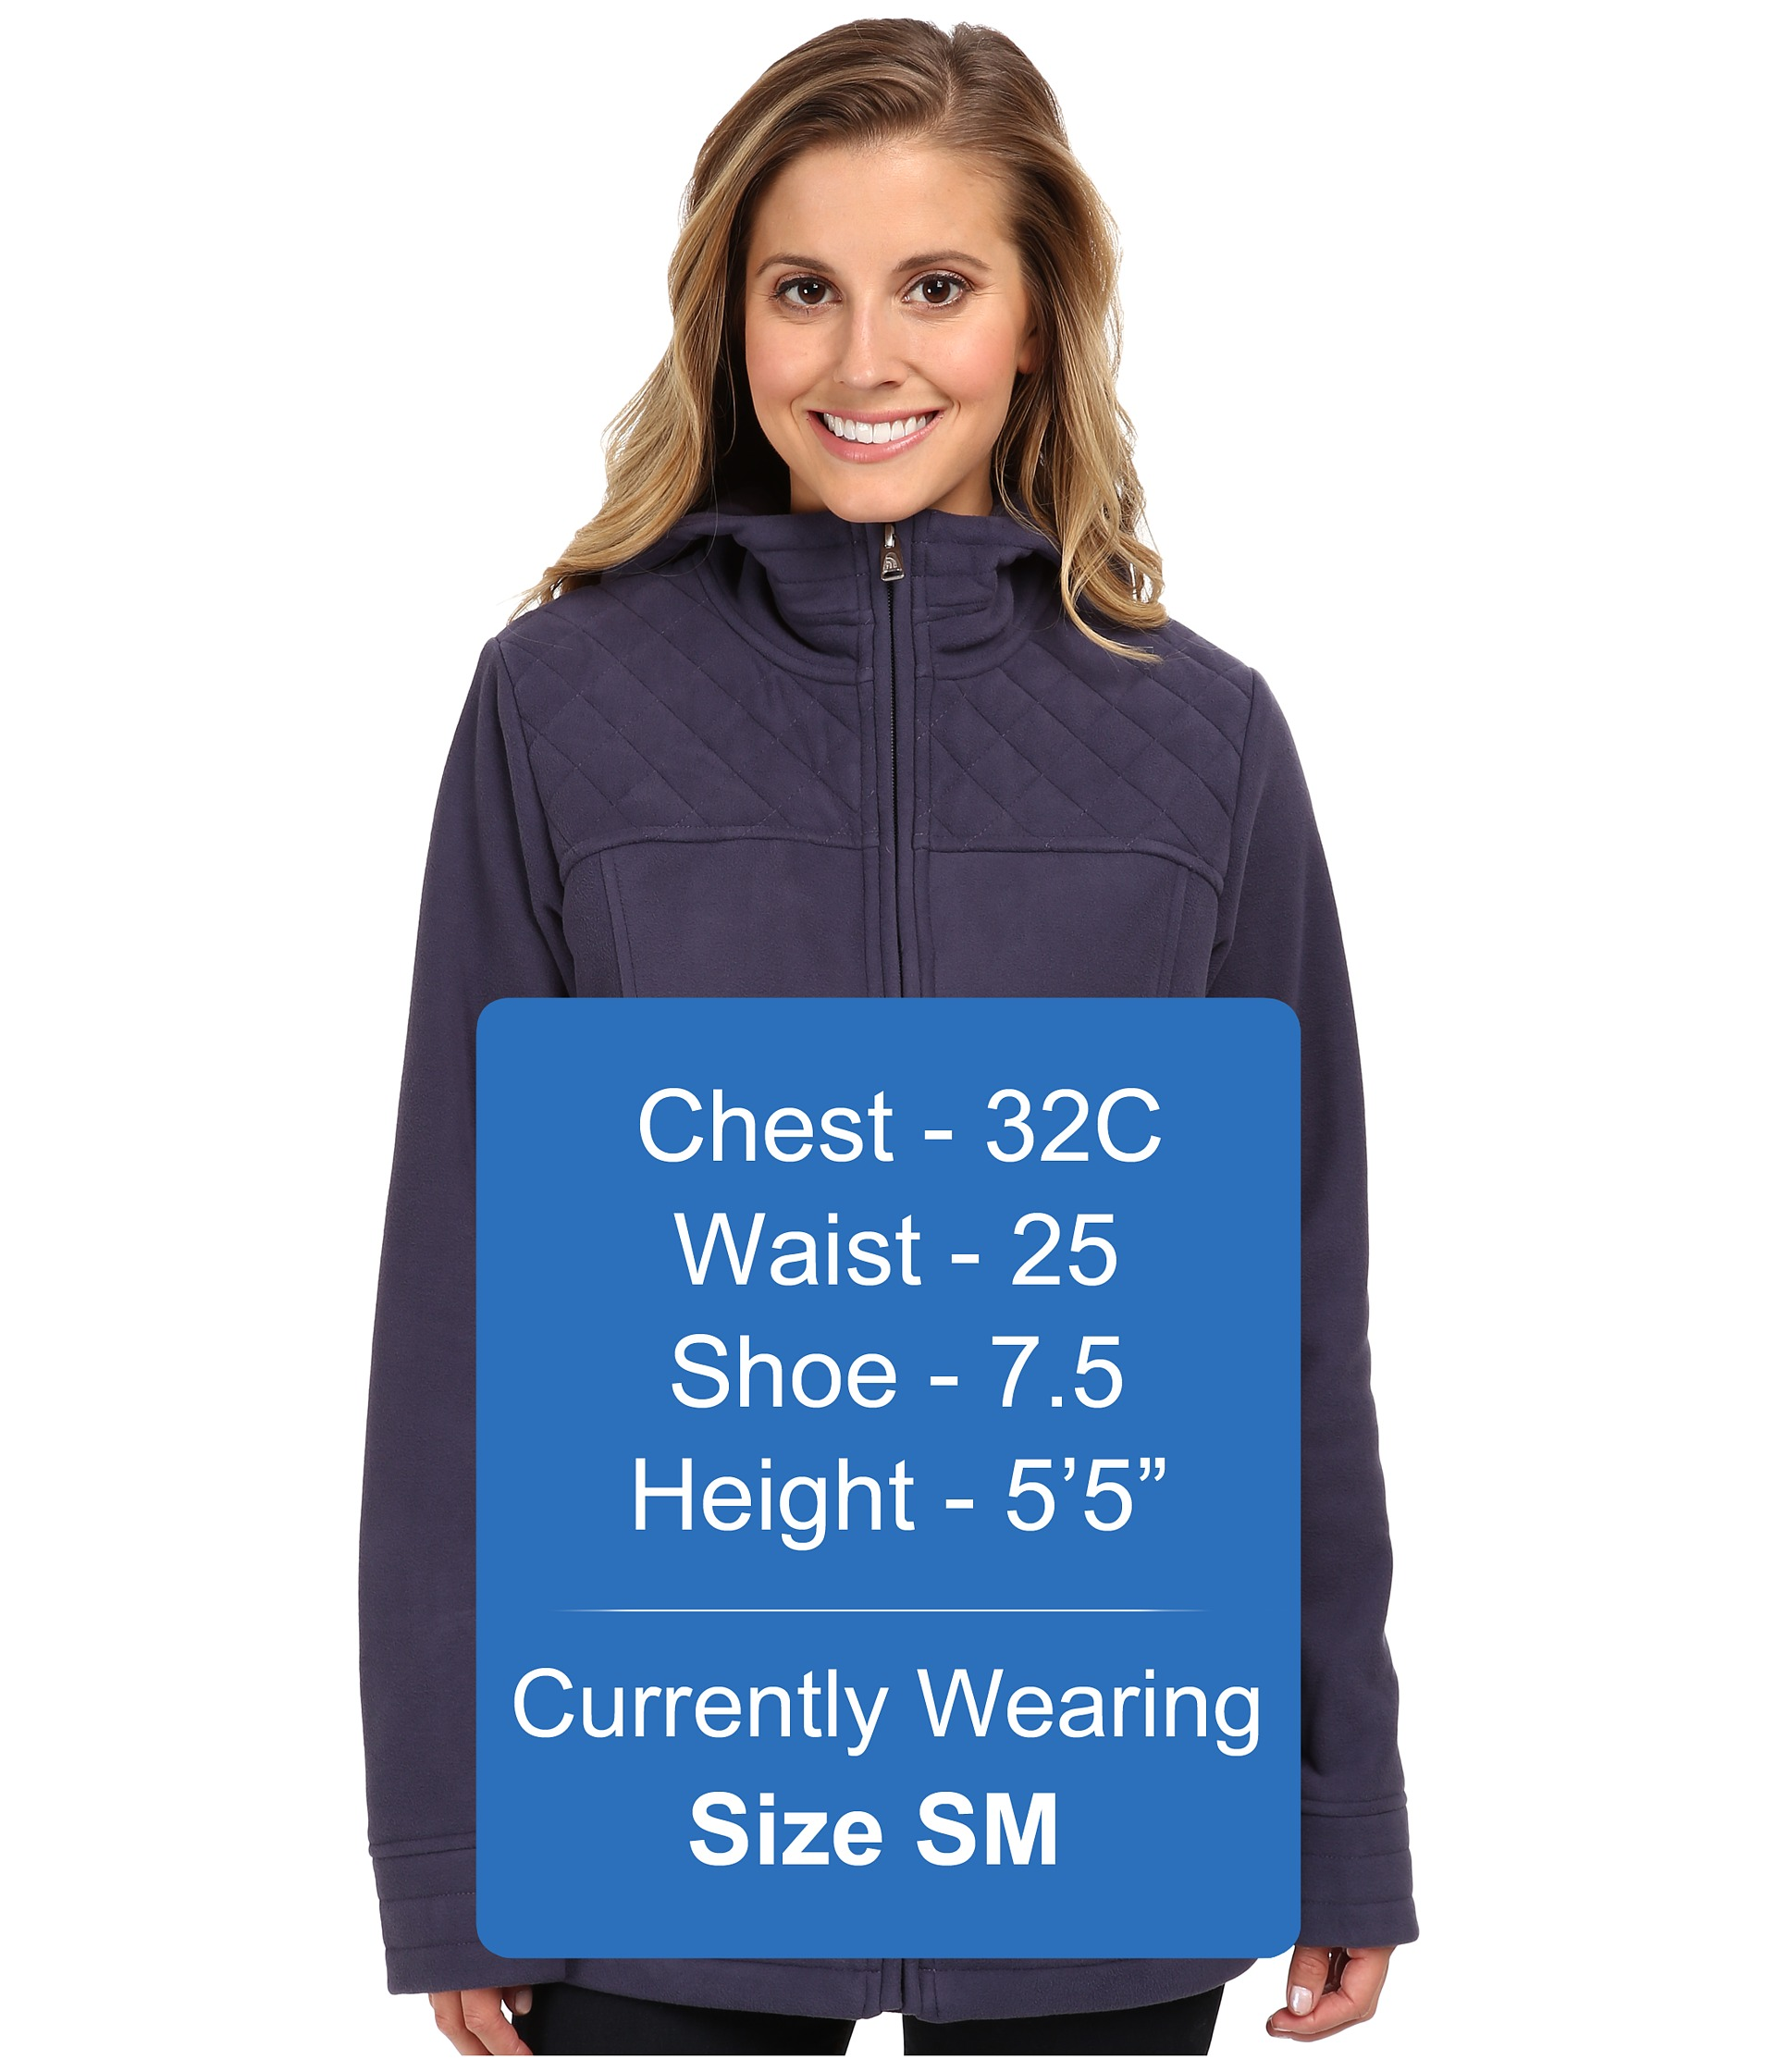 The North Face Women Coats Outerwear~1 Women North Face Hoodies